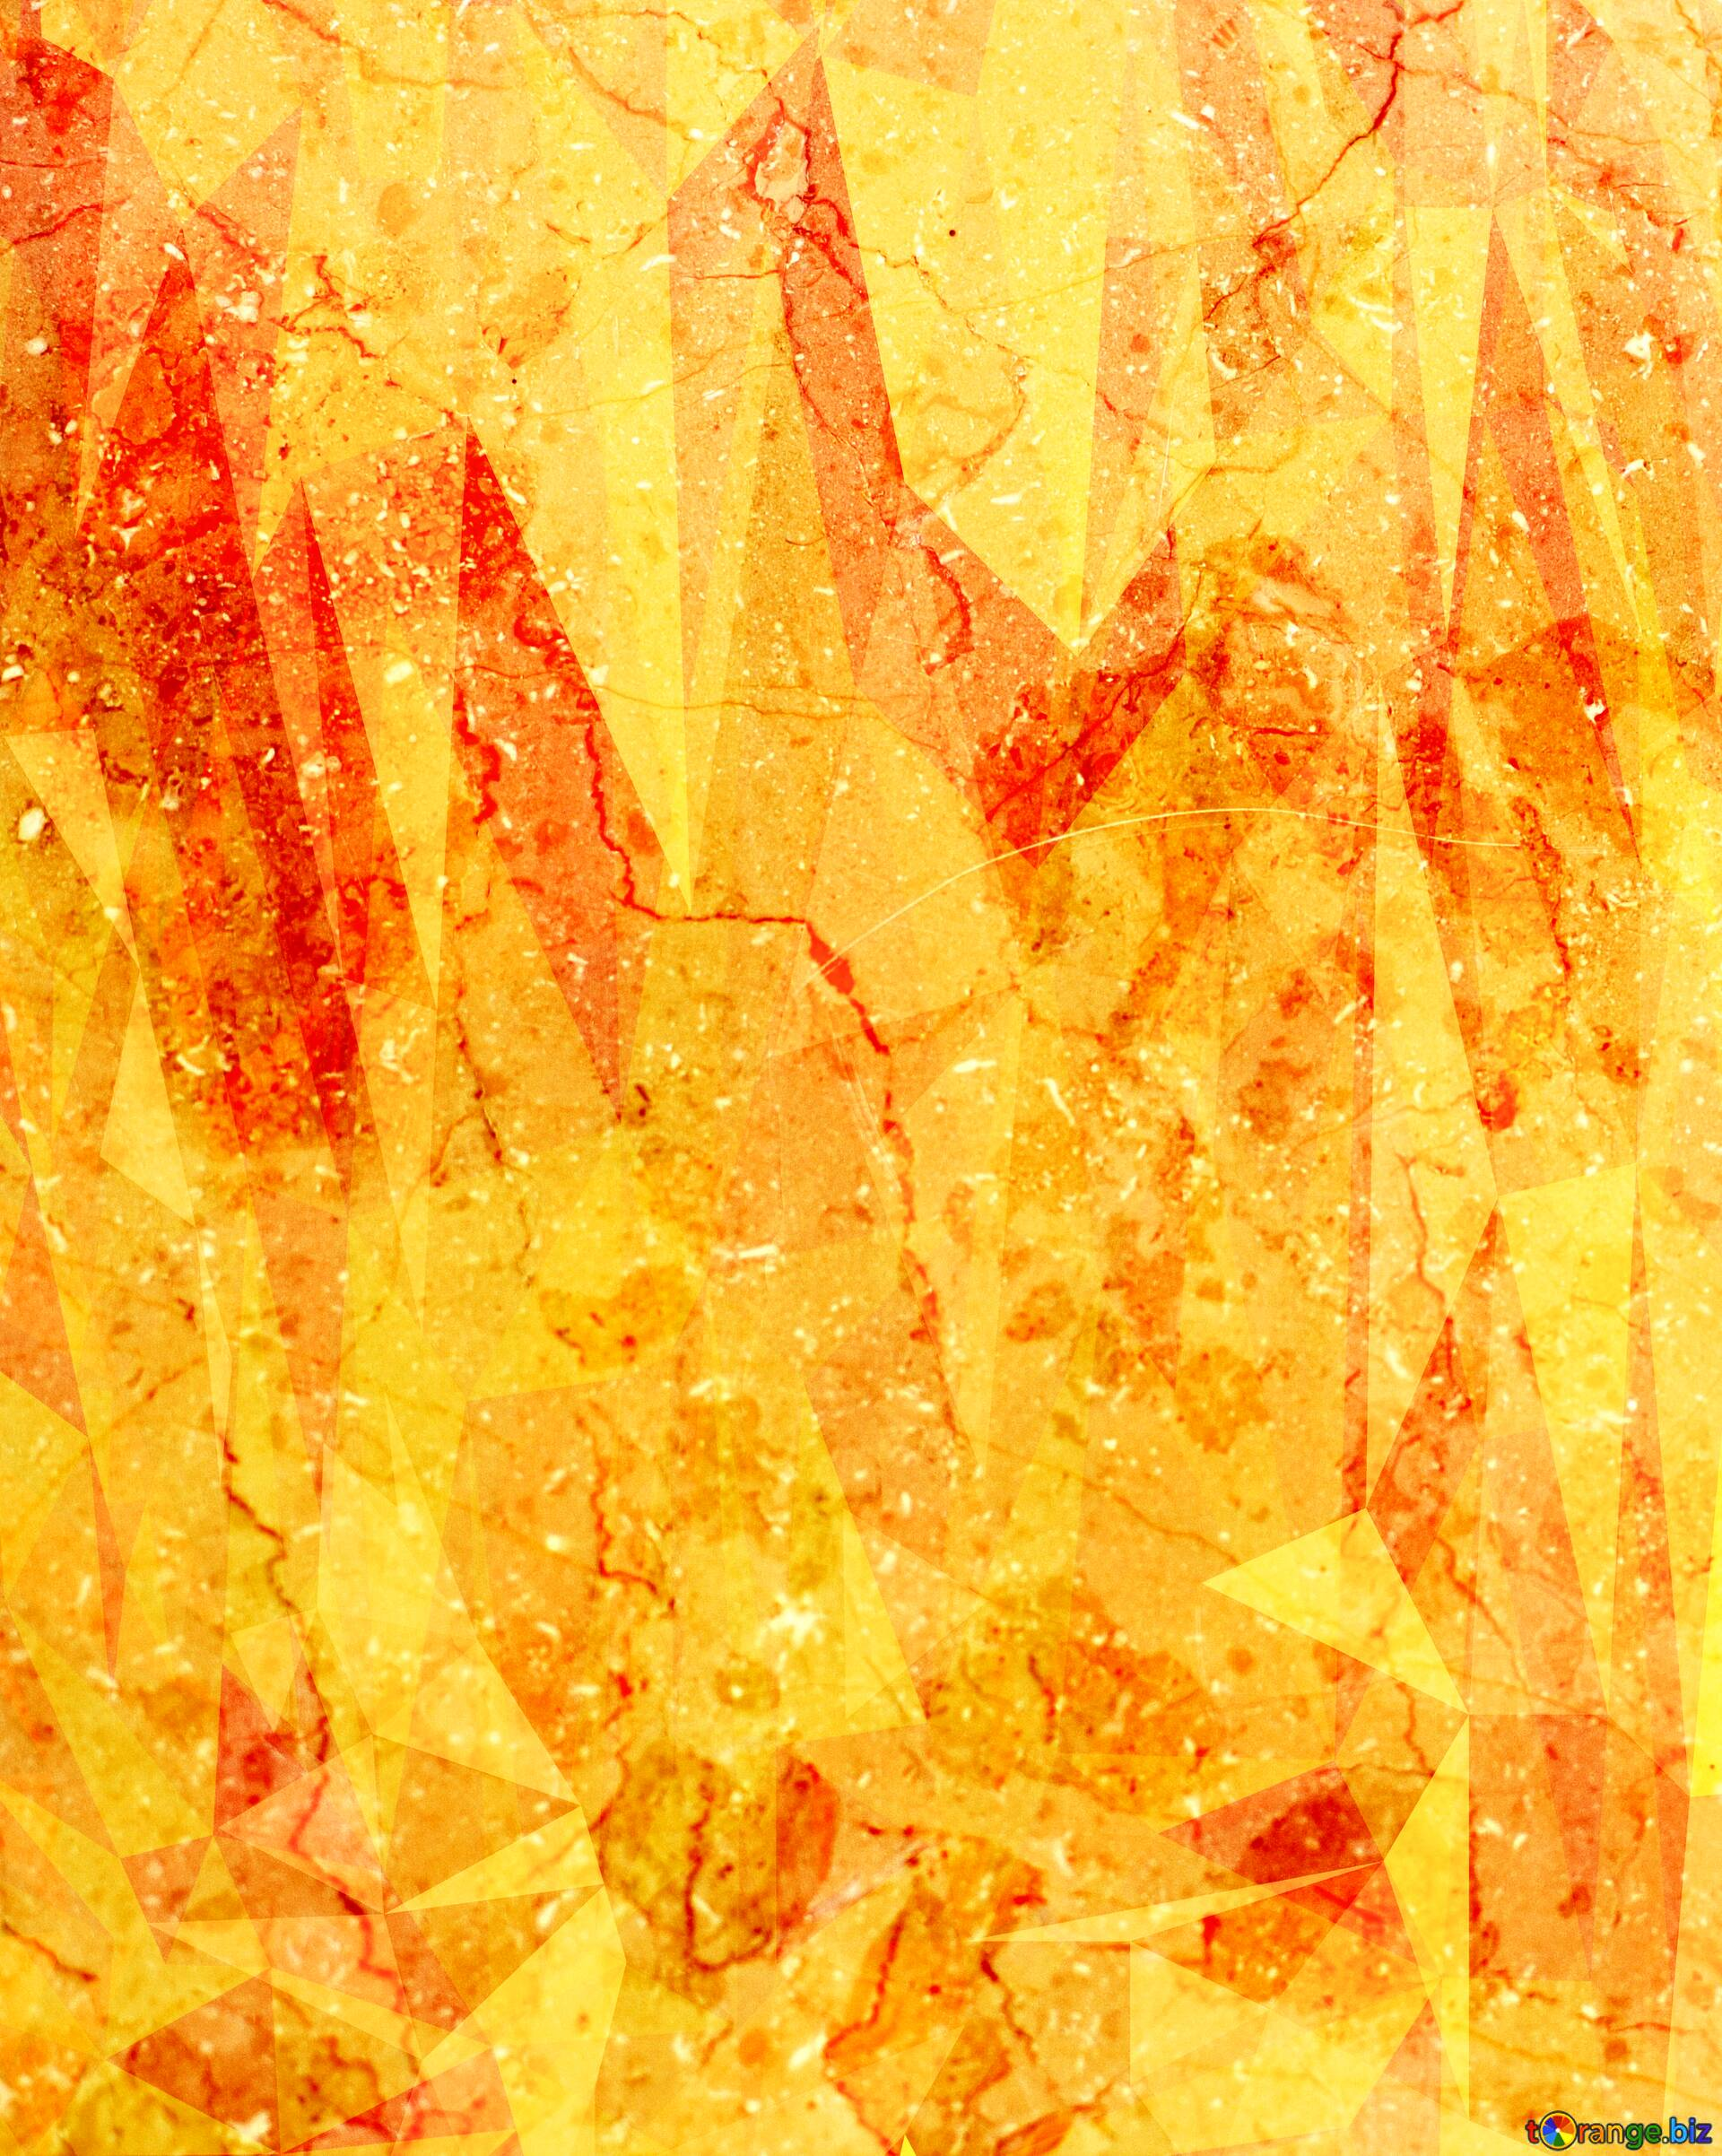 Download Free Picture Light Marble Texture Polygonal Orange Yellow Triangles Background On Cc By License Free Image Stock Torange Biz Fx 207215